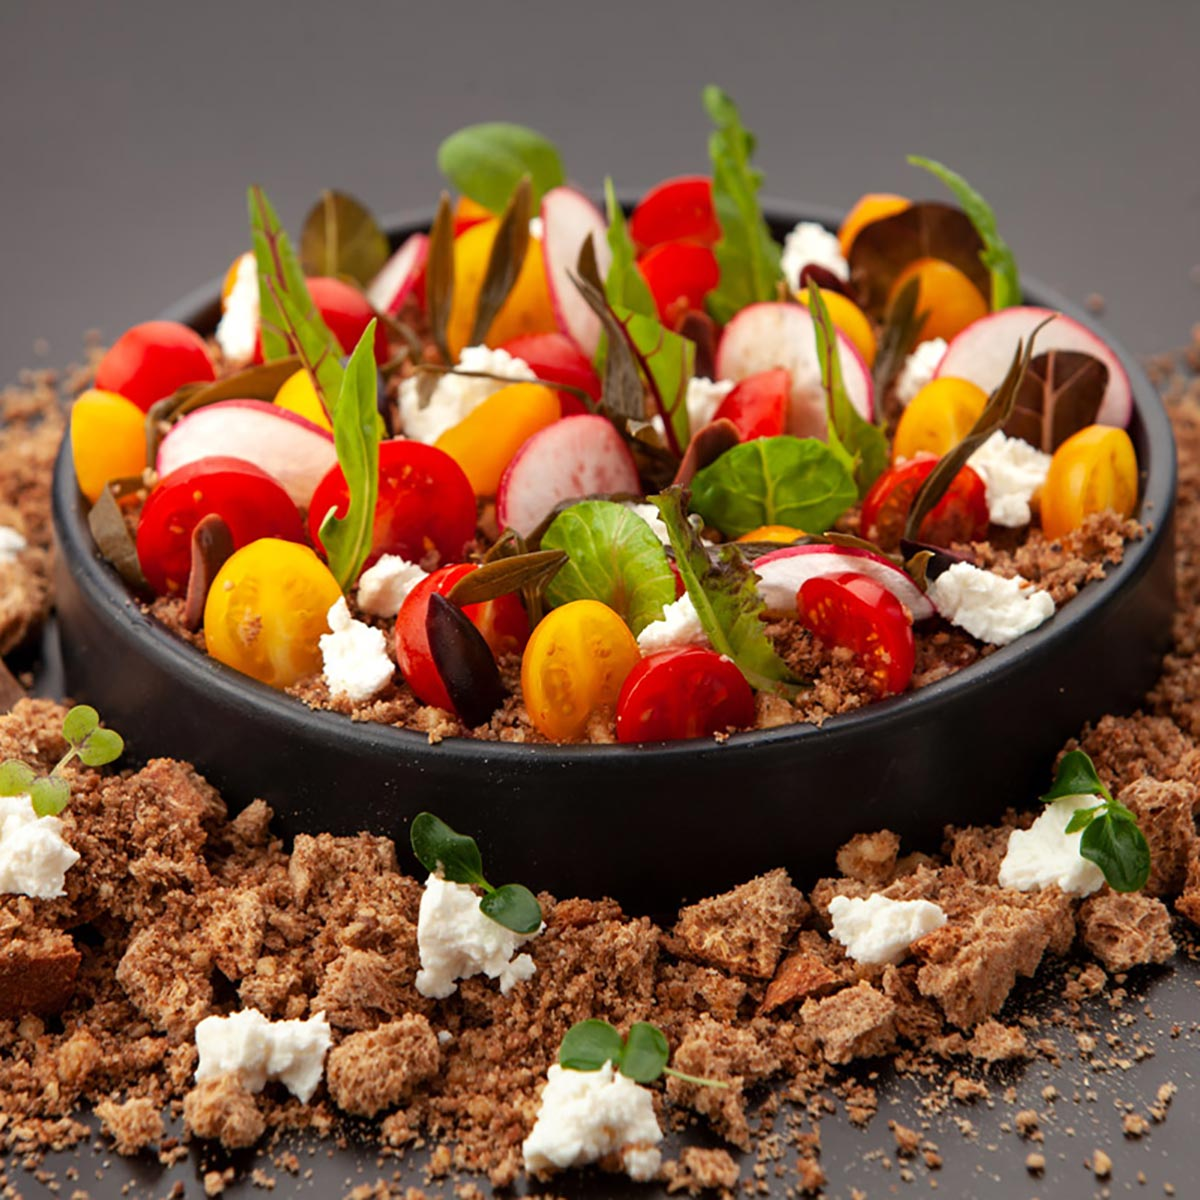 Chef Aostolos Altanis tomato and feta dakos salad with herbs